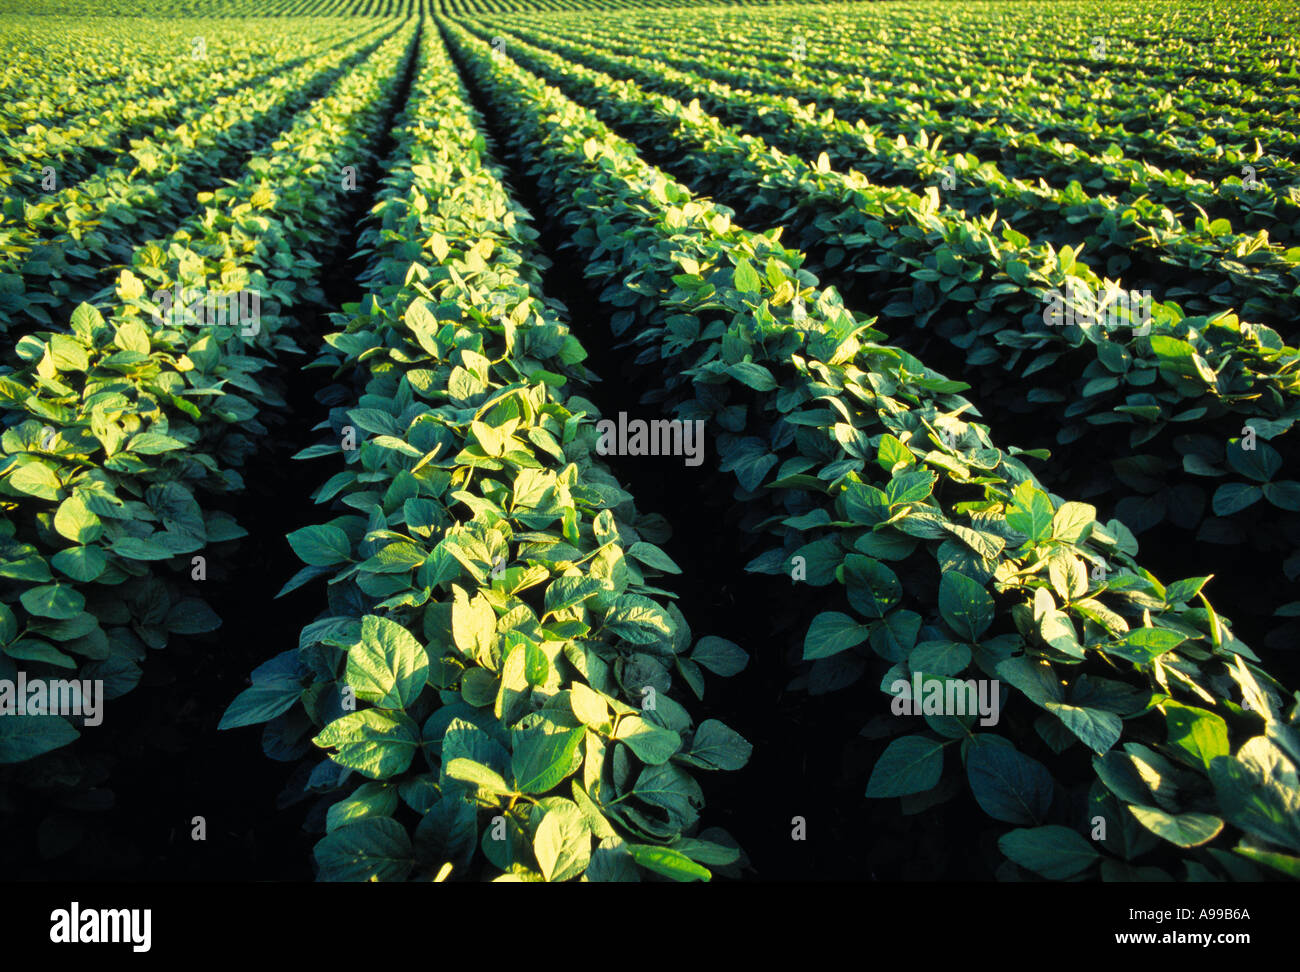 Agriculture - Mid growth soybean field / Iowa, USA. Stock Photo